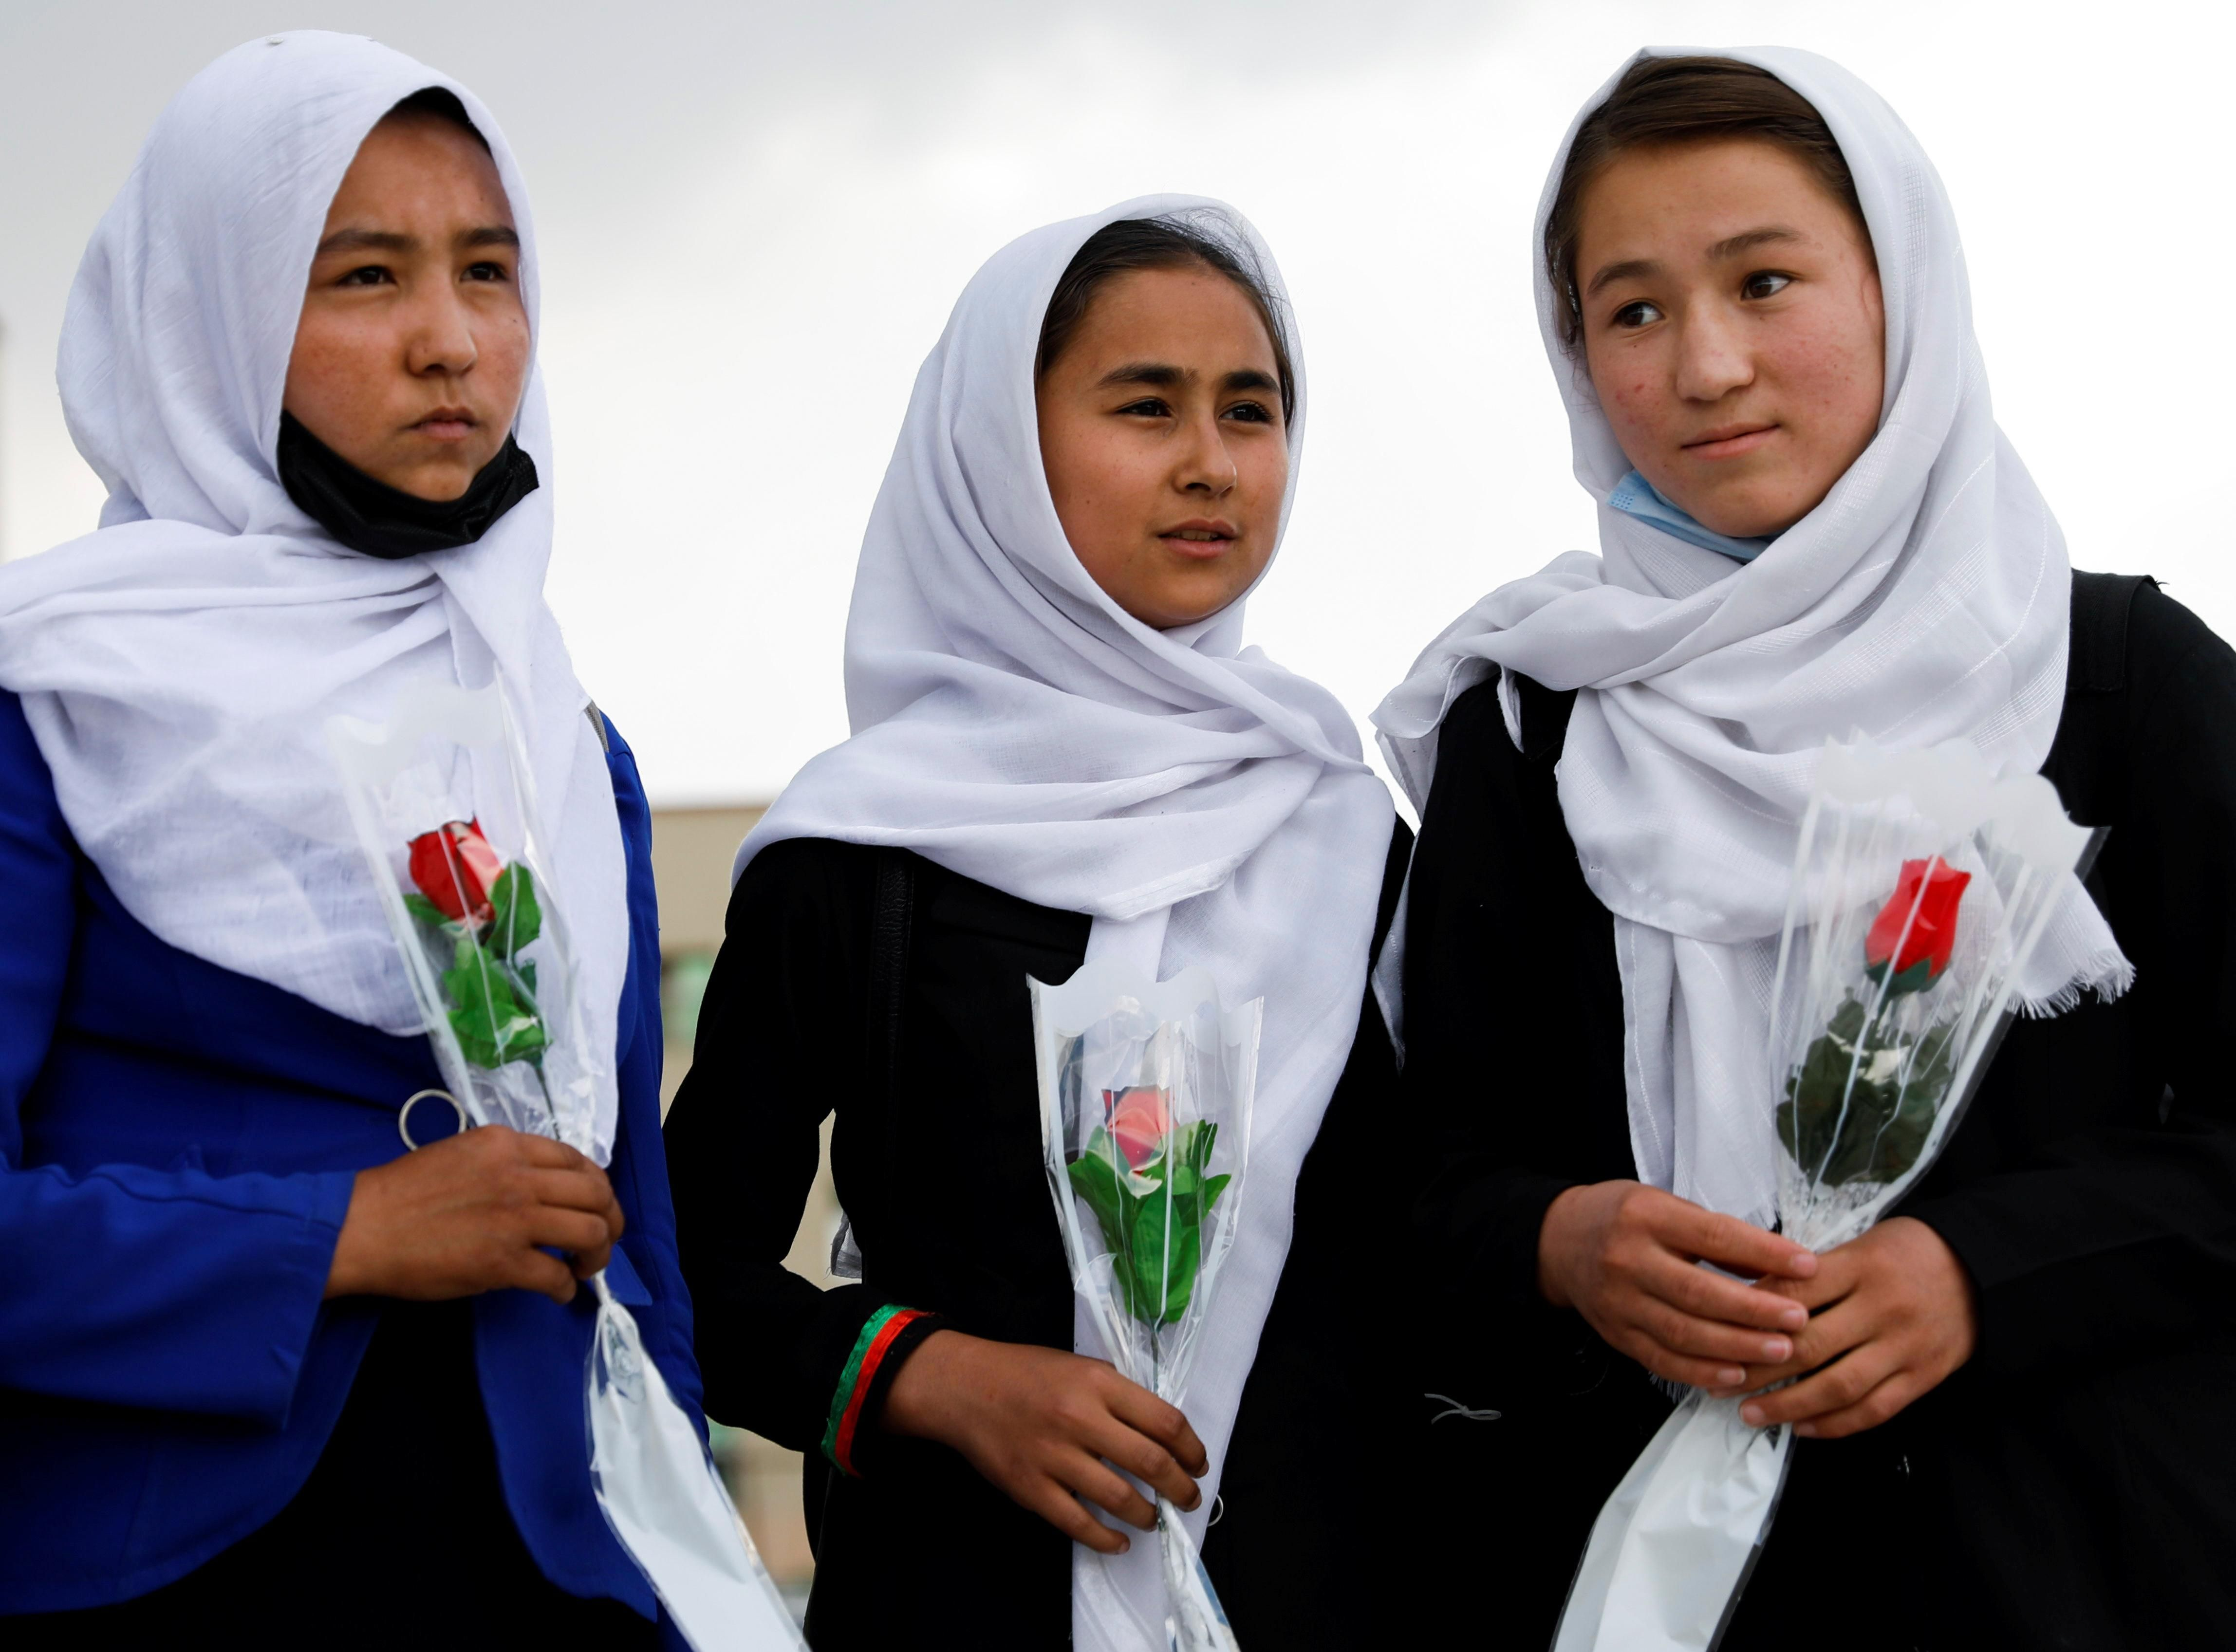 Schoolgirls hold flowers as they arrive to visit students who were injured in a car bomb blast outside a school, at a hospital in Kabul, Afghanistan May 10, 2021.